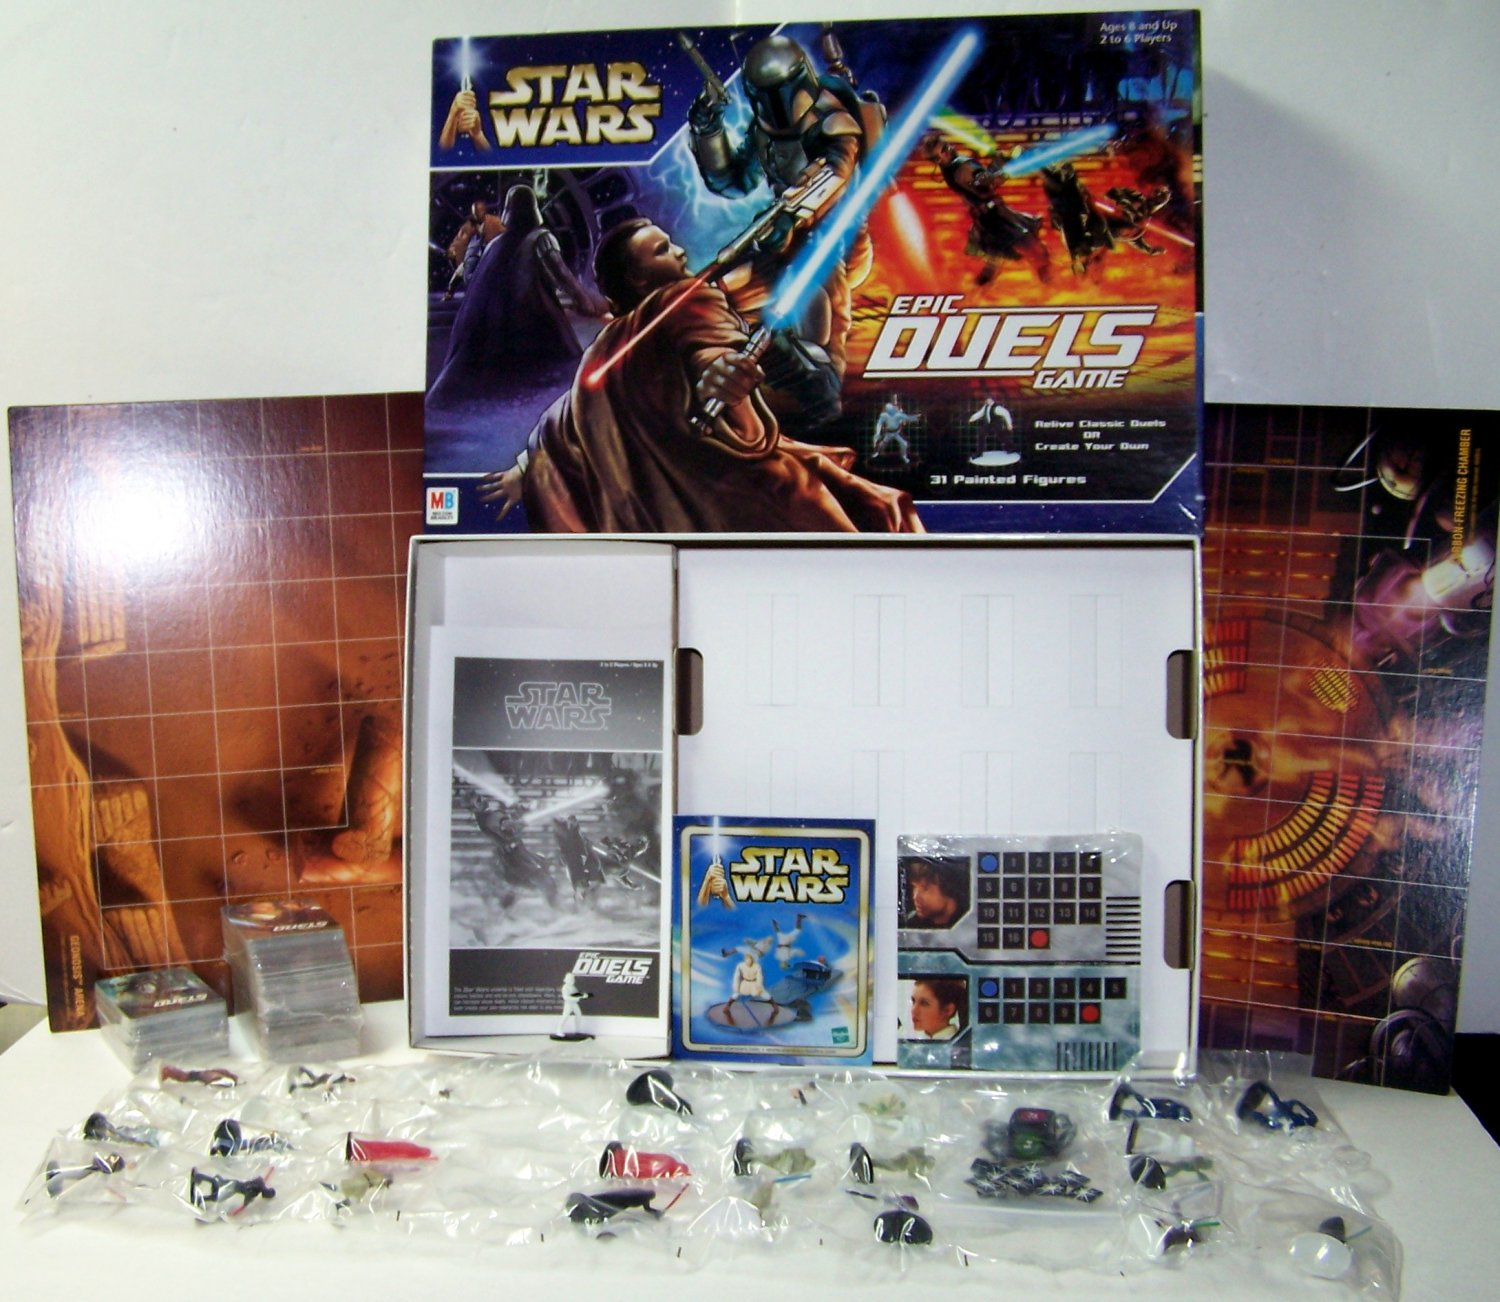 STAR WARS Epic Duels Game 31 PAINTED FIGURES  Milton Bradley